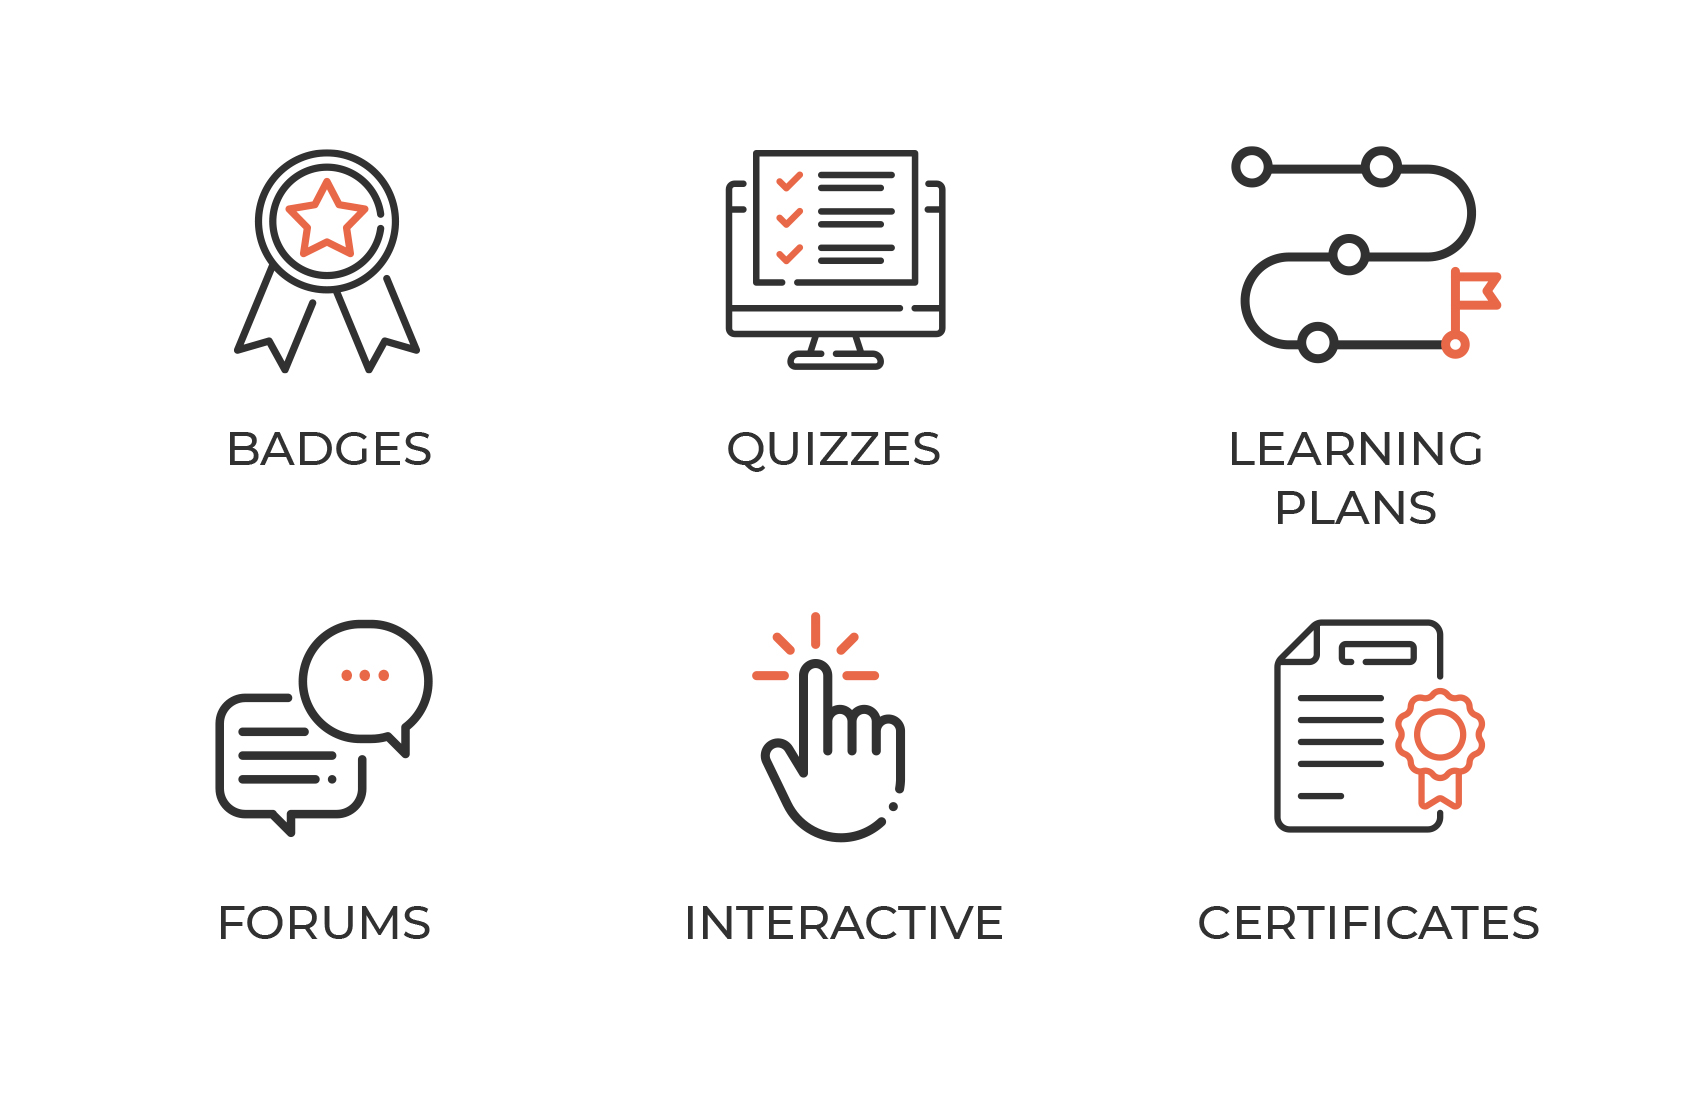 image lambda learn features badges quizzes learning plans forums etc